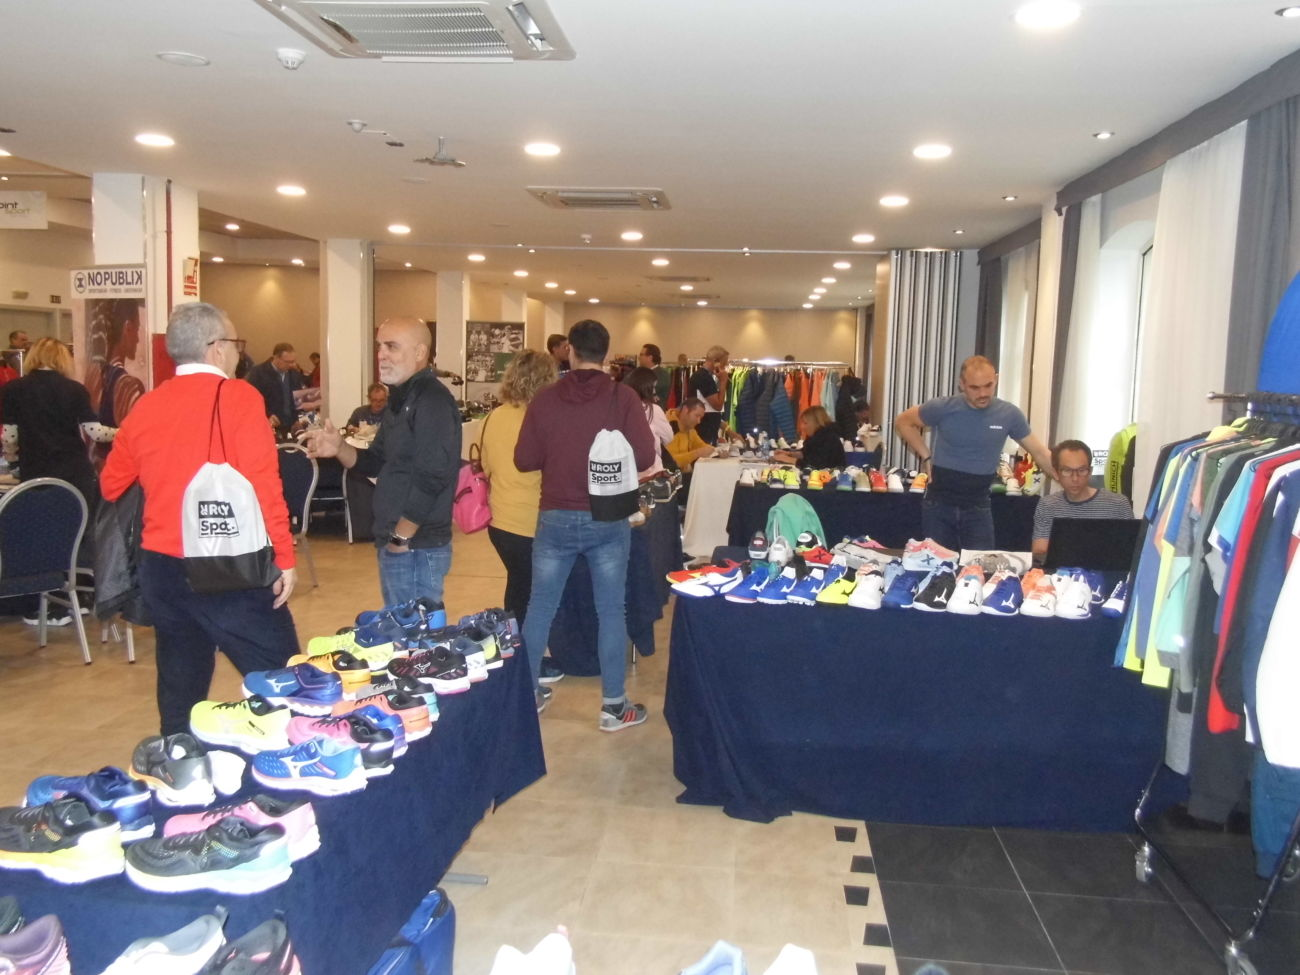 jornadas de compra de Point Sport